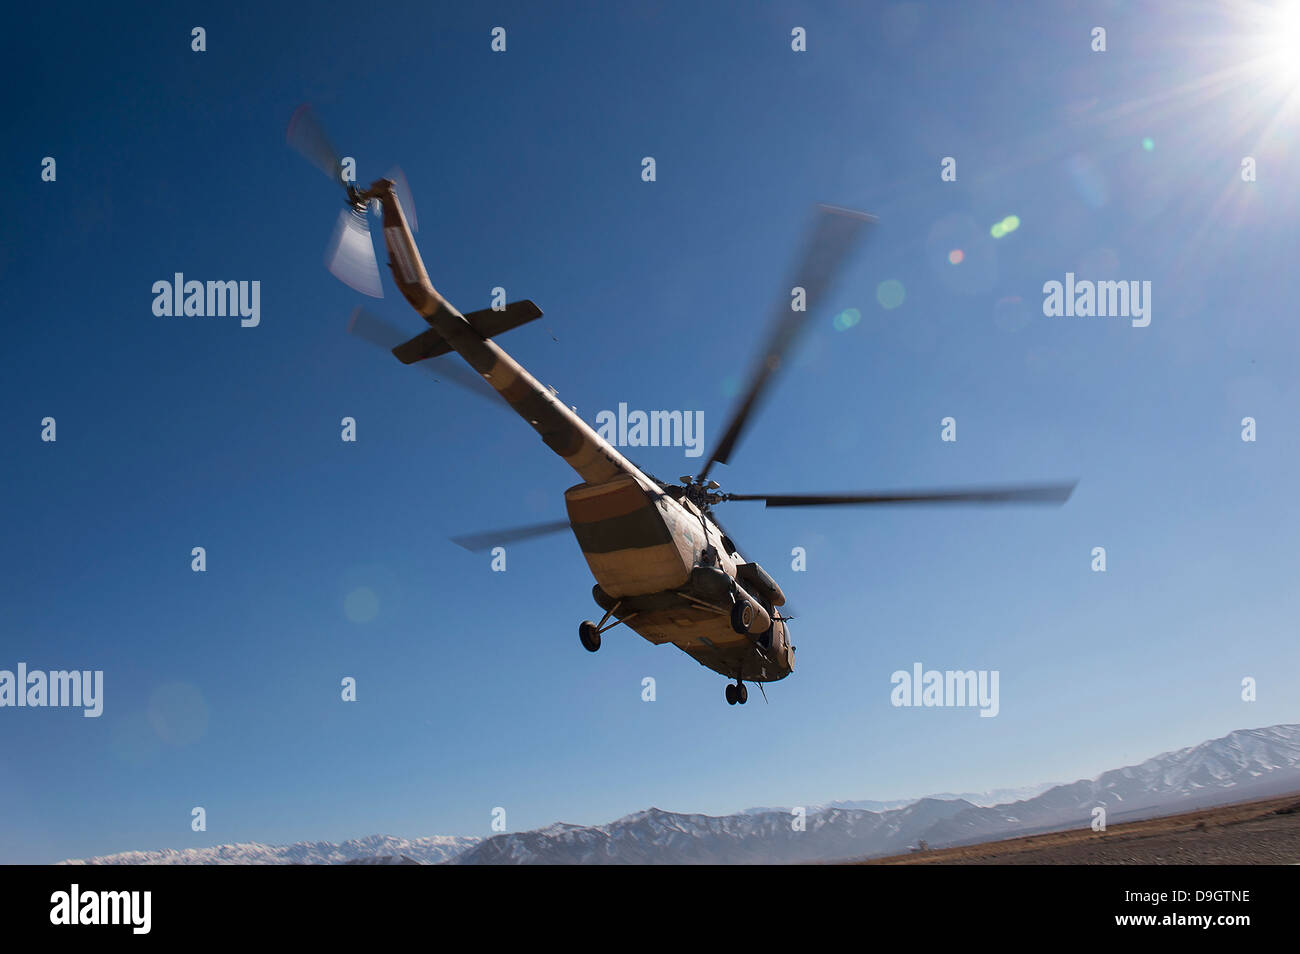 An Afghan Air Force Mil Mi-17 helicopter over Afghanistan. Stock Photo